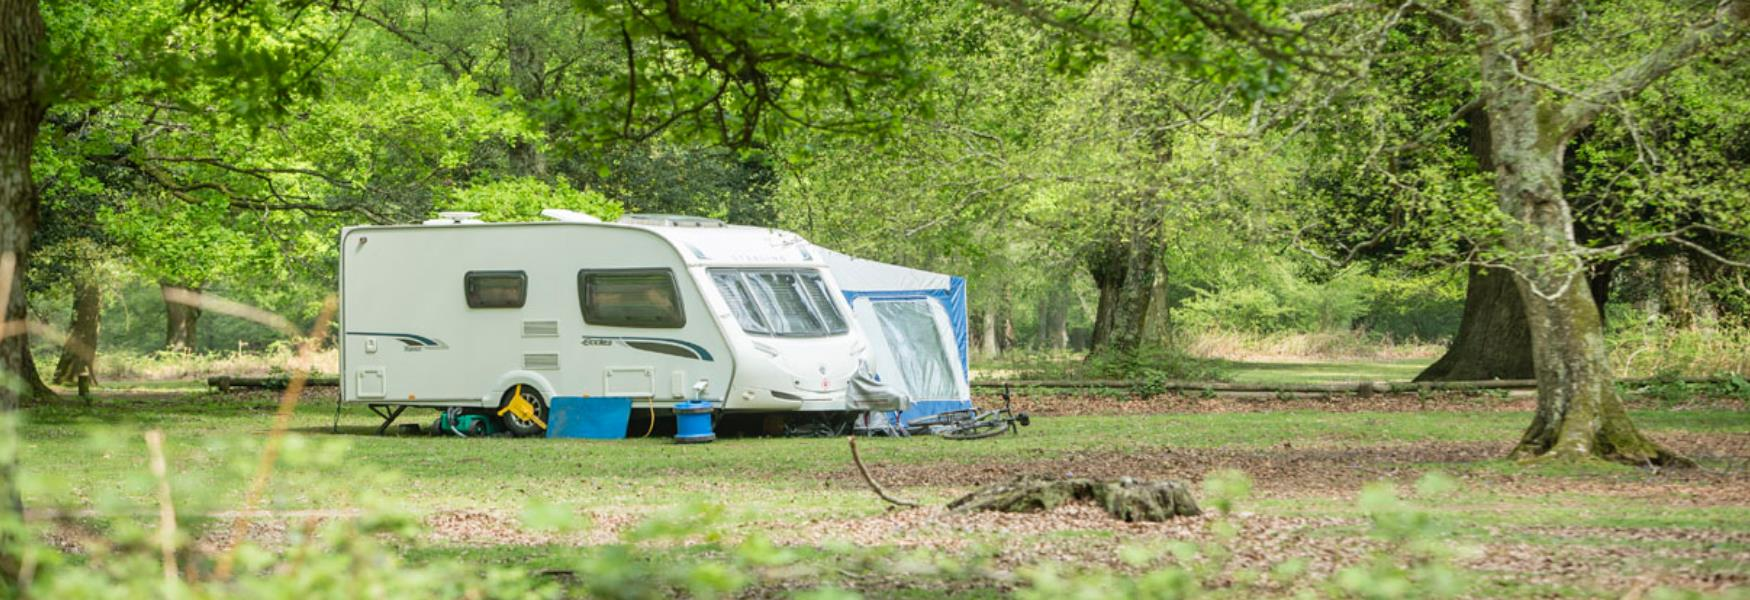 New Forest Camping Caravans And Holiday Parks